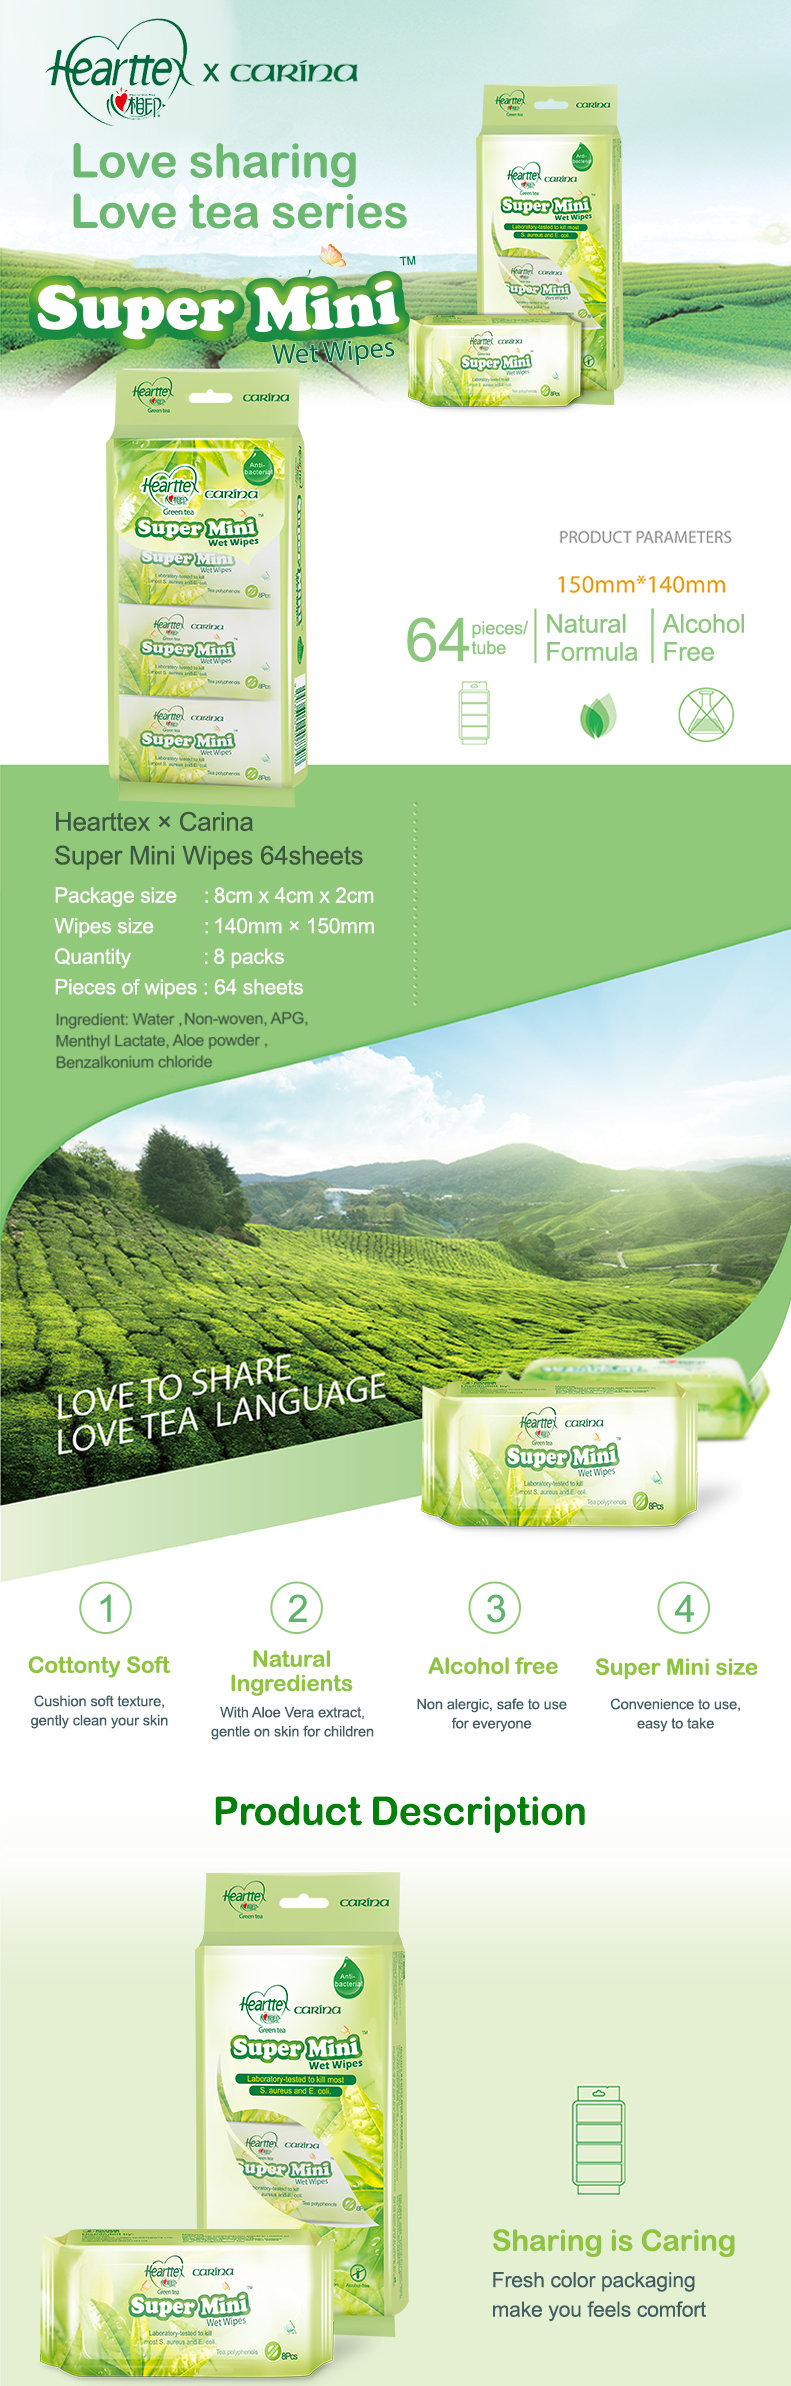 Hearttex Super Mini Wipes 8's x 1 tube - TEA SERIES